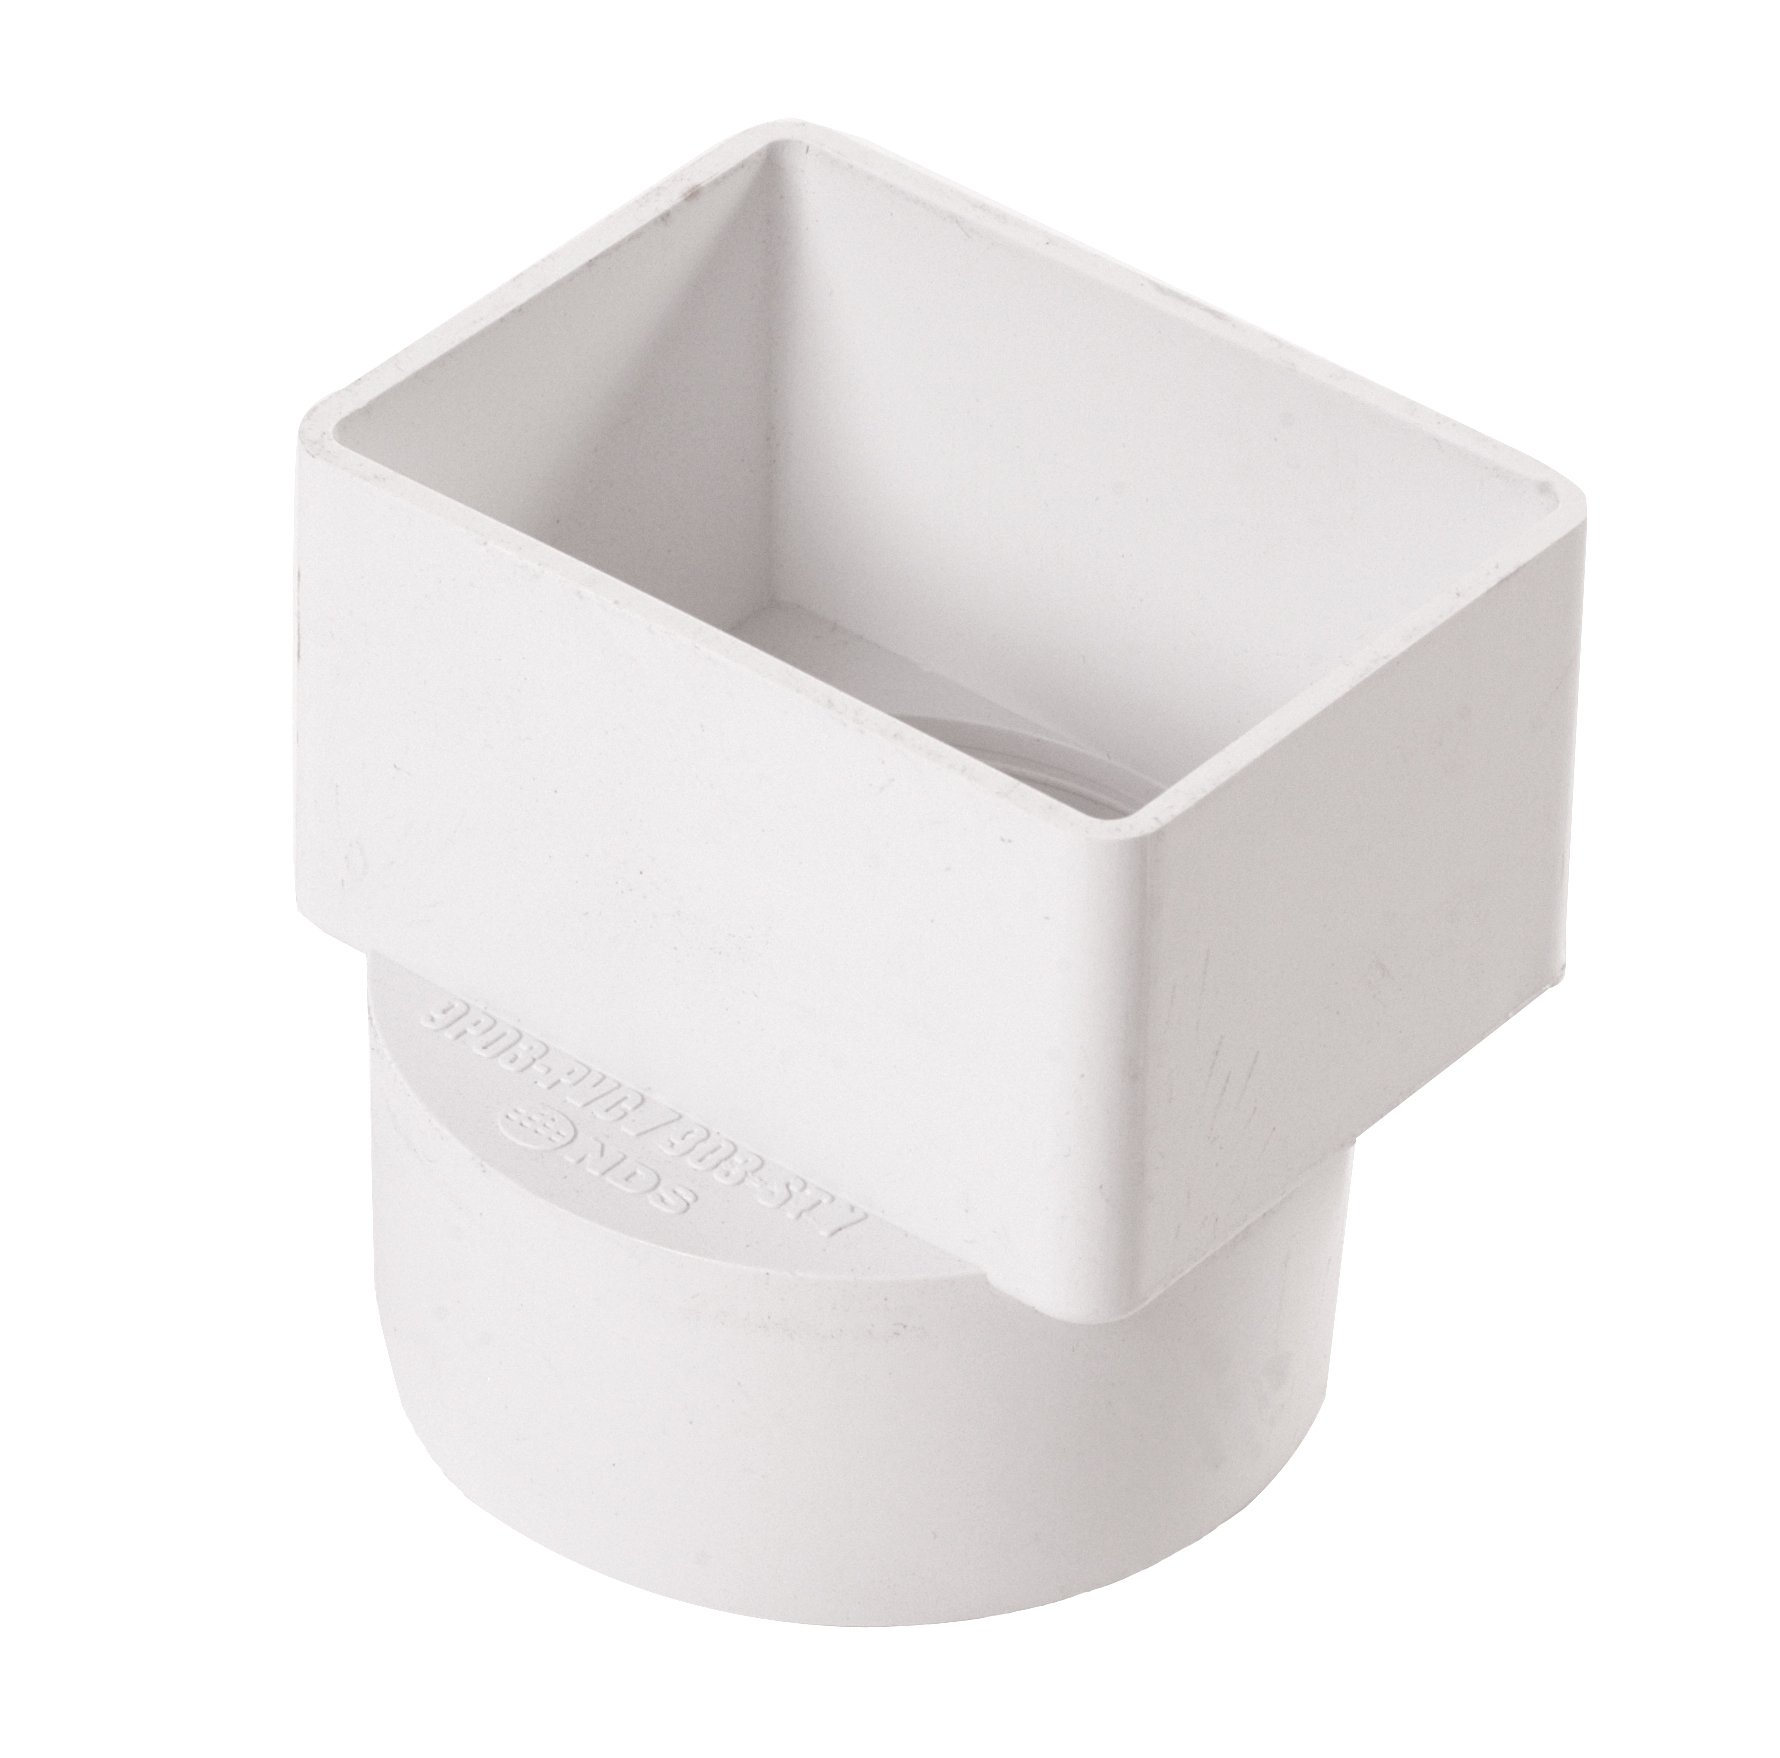 NDS 903 Styrene Downspout Adapter, 2-Inch by 3-Inch by 3-Inch, White Solvent